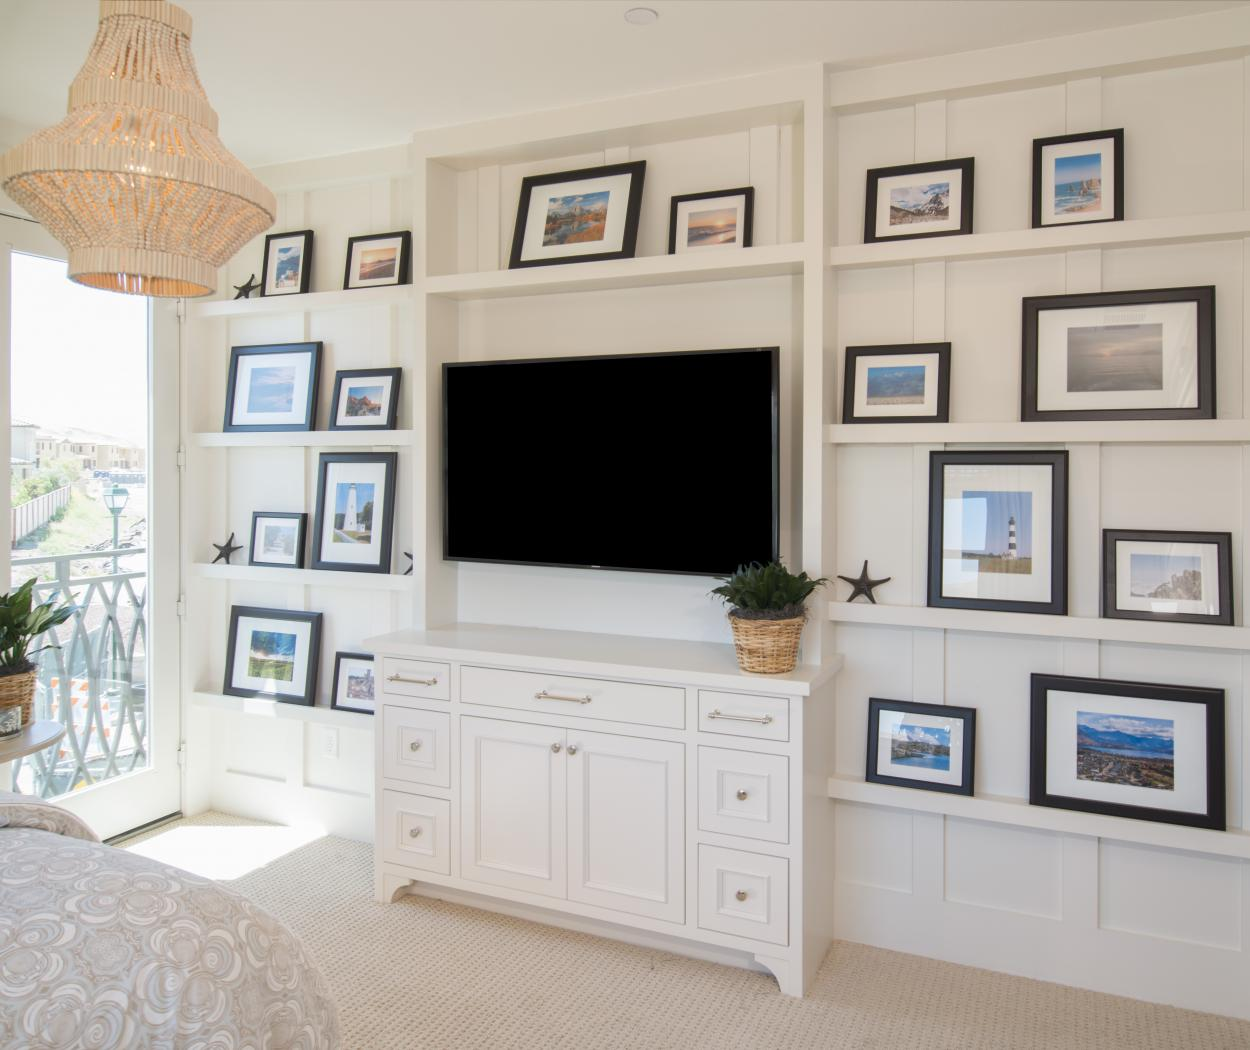 White Bedroom Entertainment Center with Open Shelves and a Beautiful Black Flat Screen TV